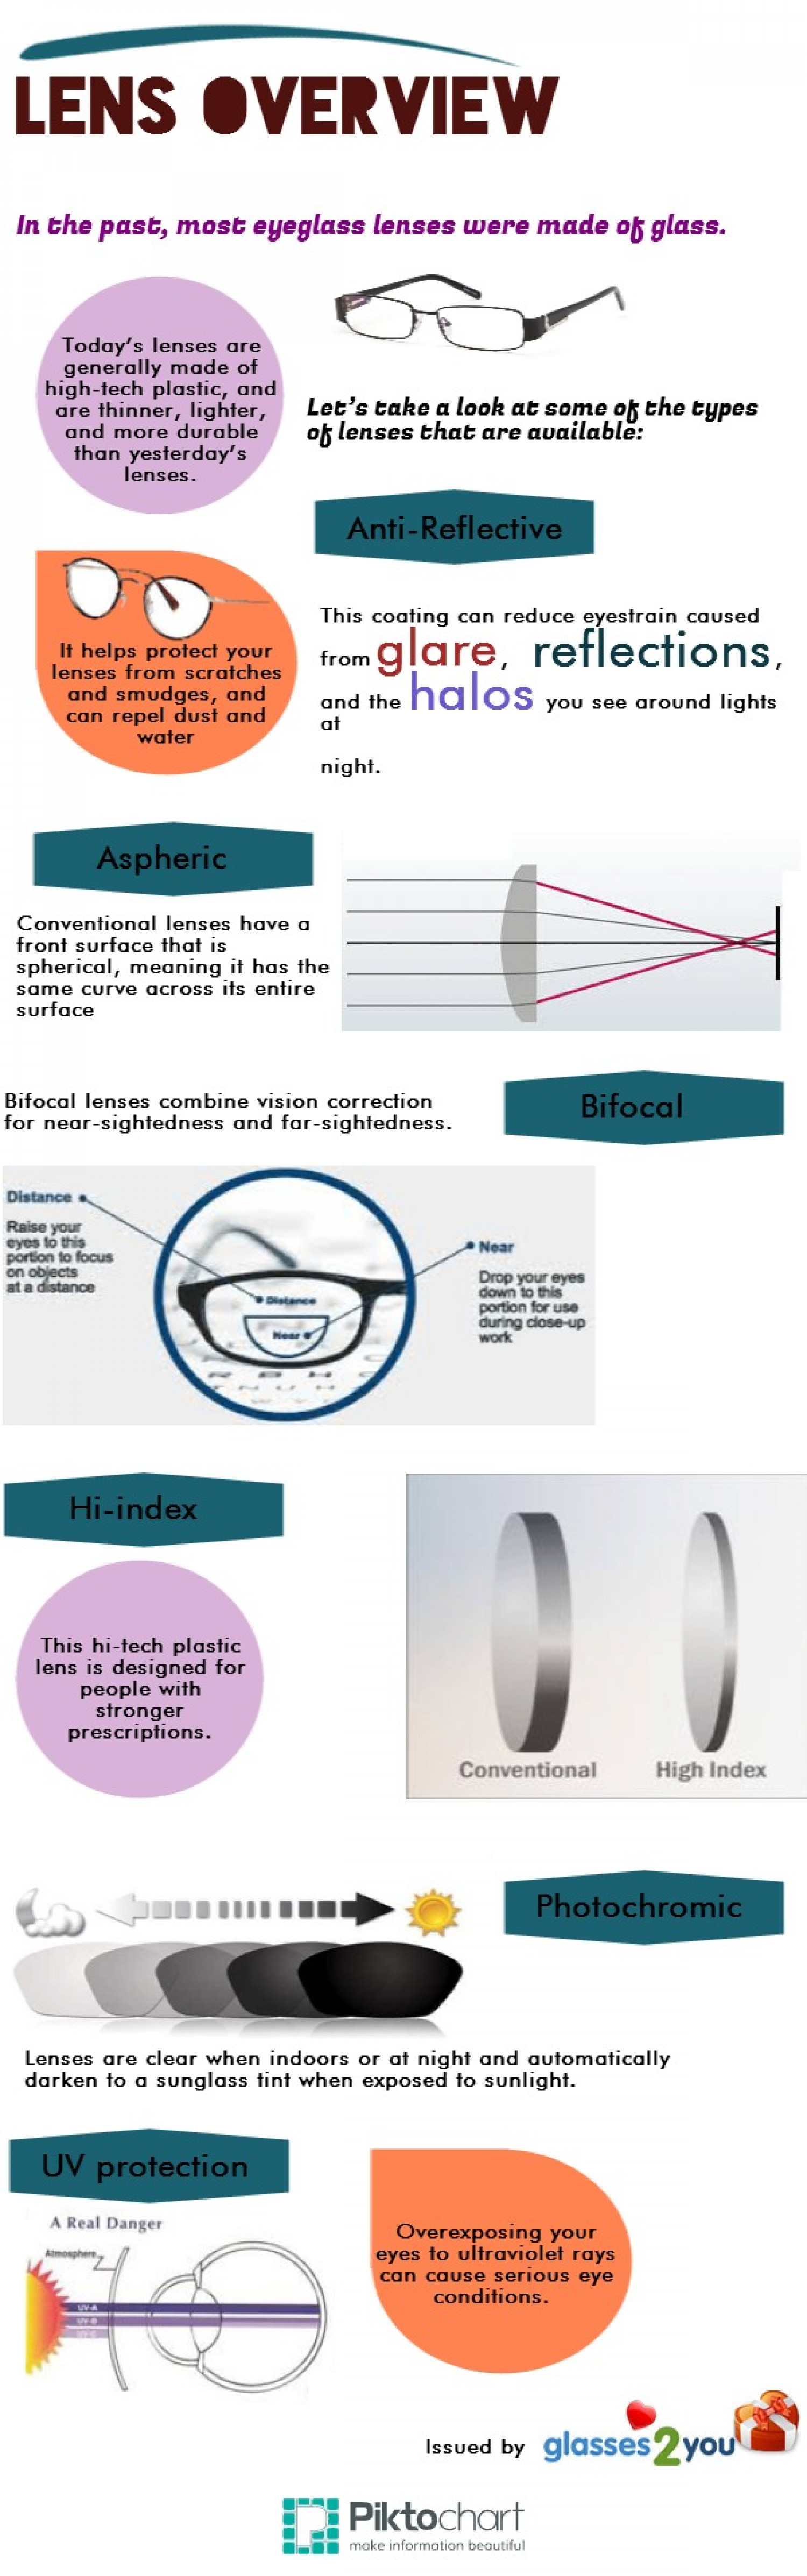 Lens Overview Infographic